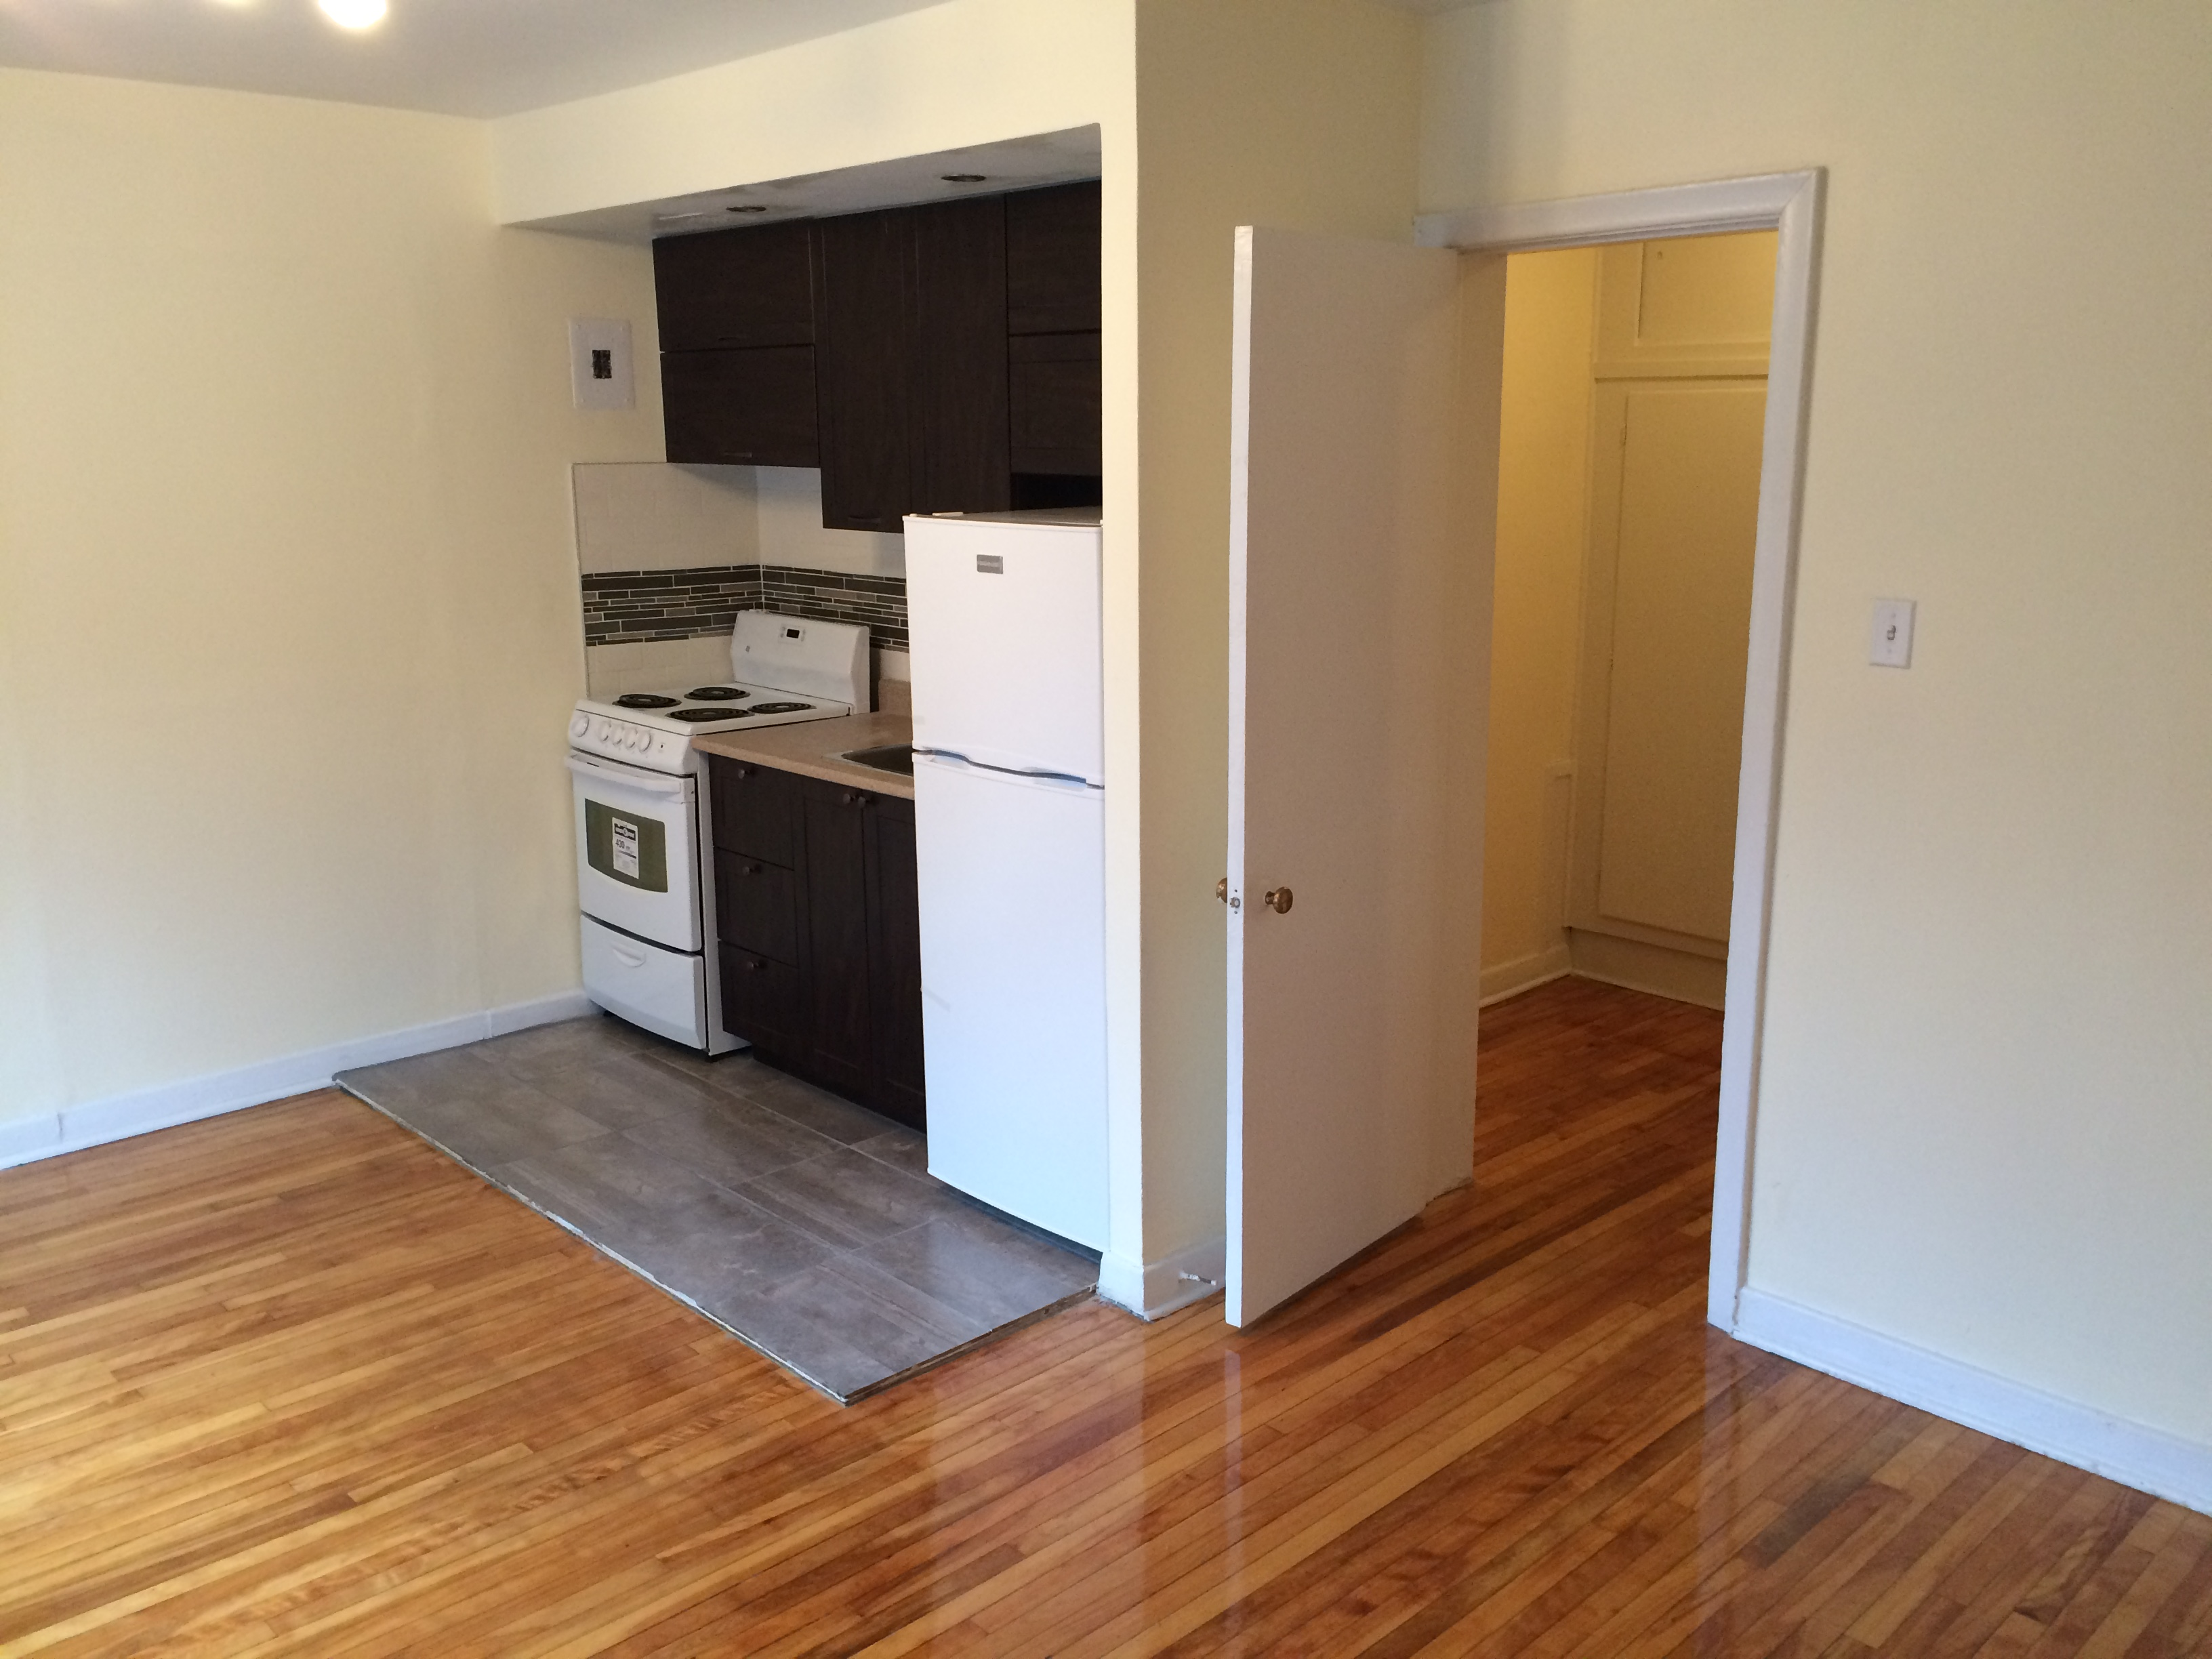 Studio / Bachelor Apartments for rent in Montreal (Downtown) at Chateau des Pins - Photo 03 - RentQuebecApartments – L6190